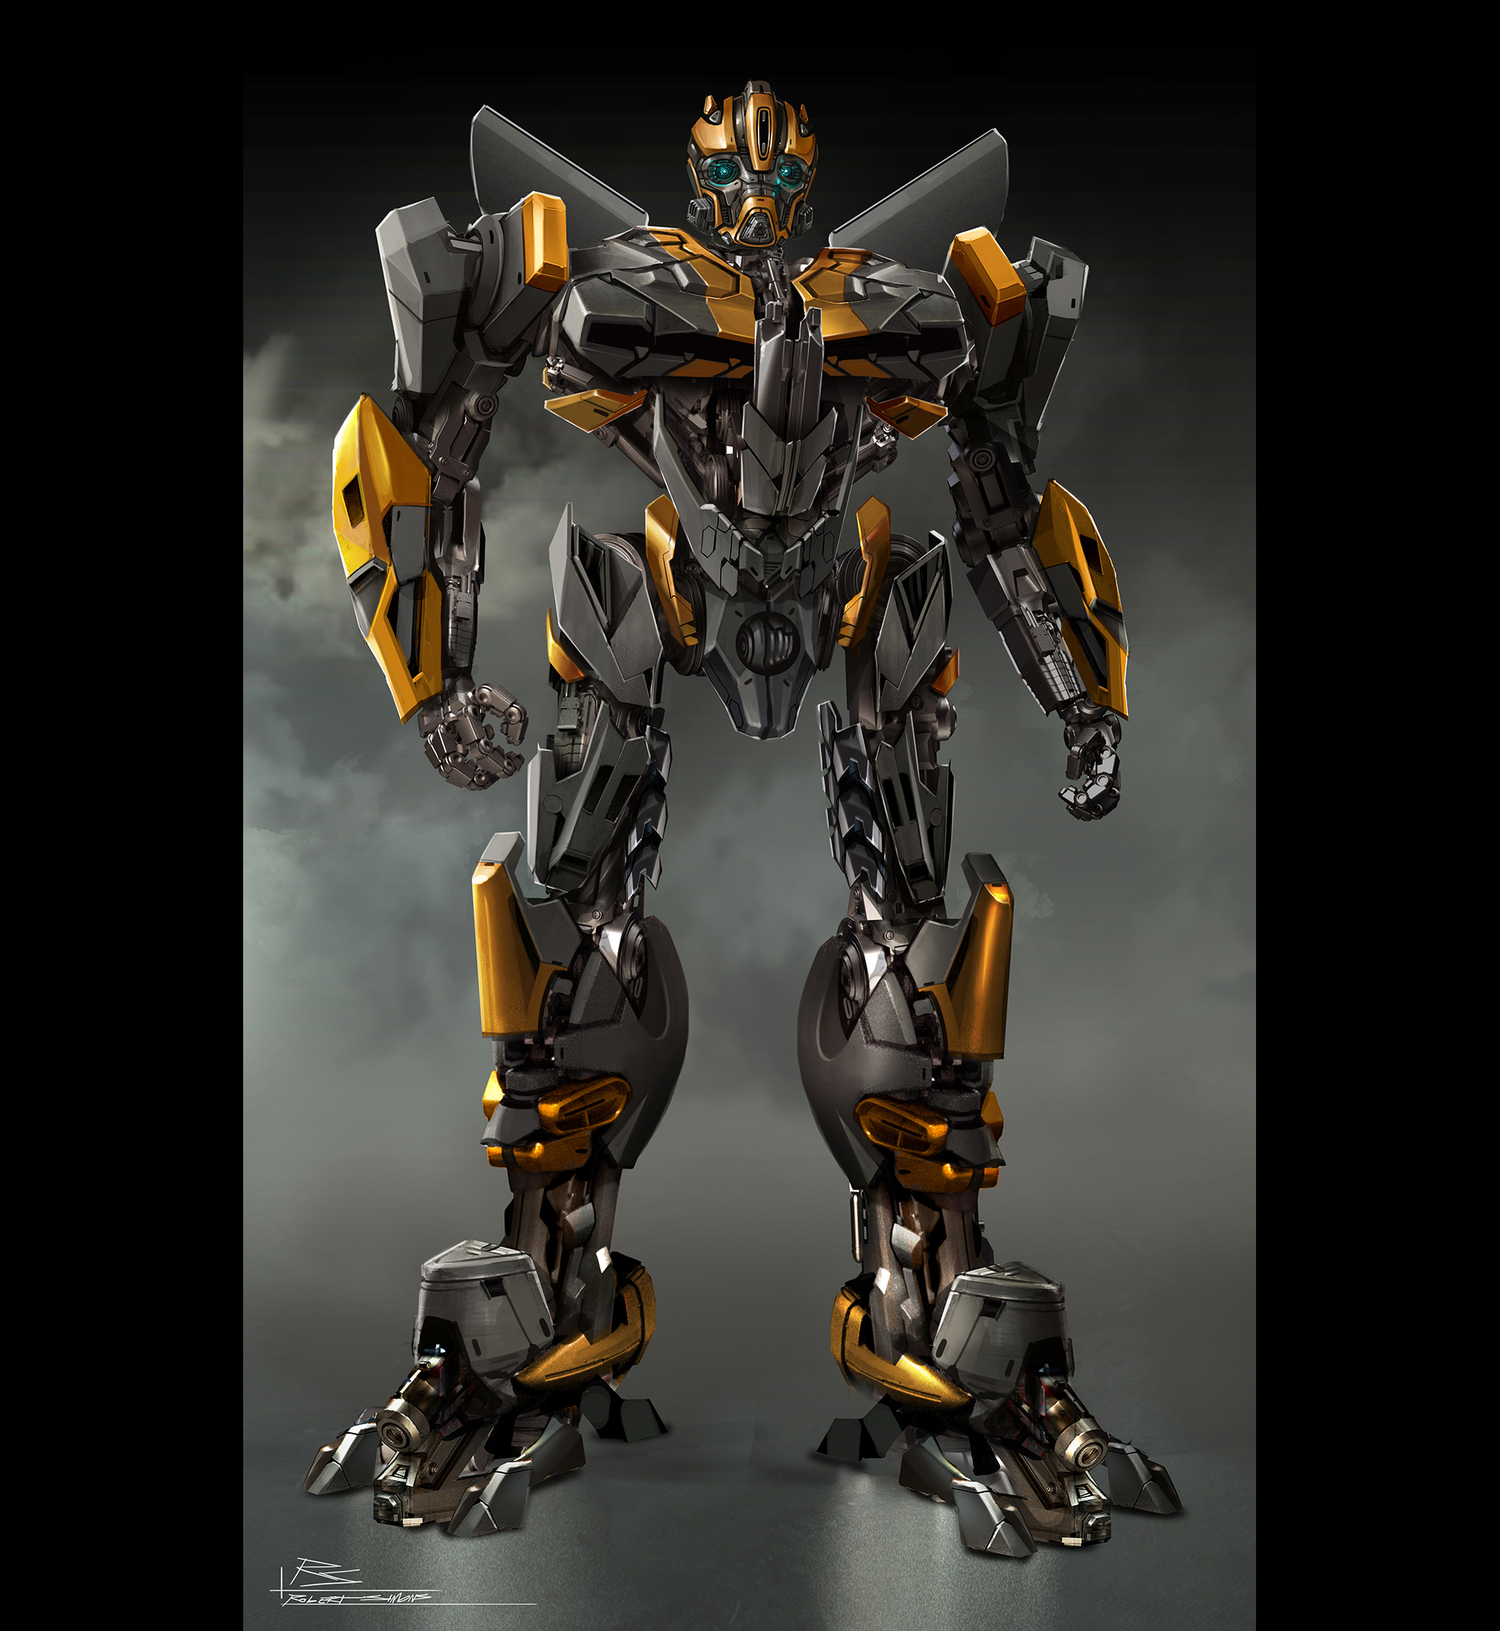 transformers 4 concept art from robert simons transformers news tfw2005. Black Bedroom Furniture Sets. Home Design Ideas